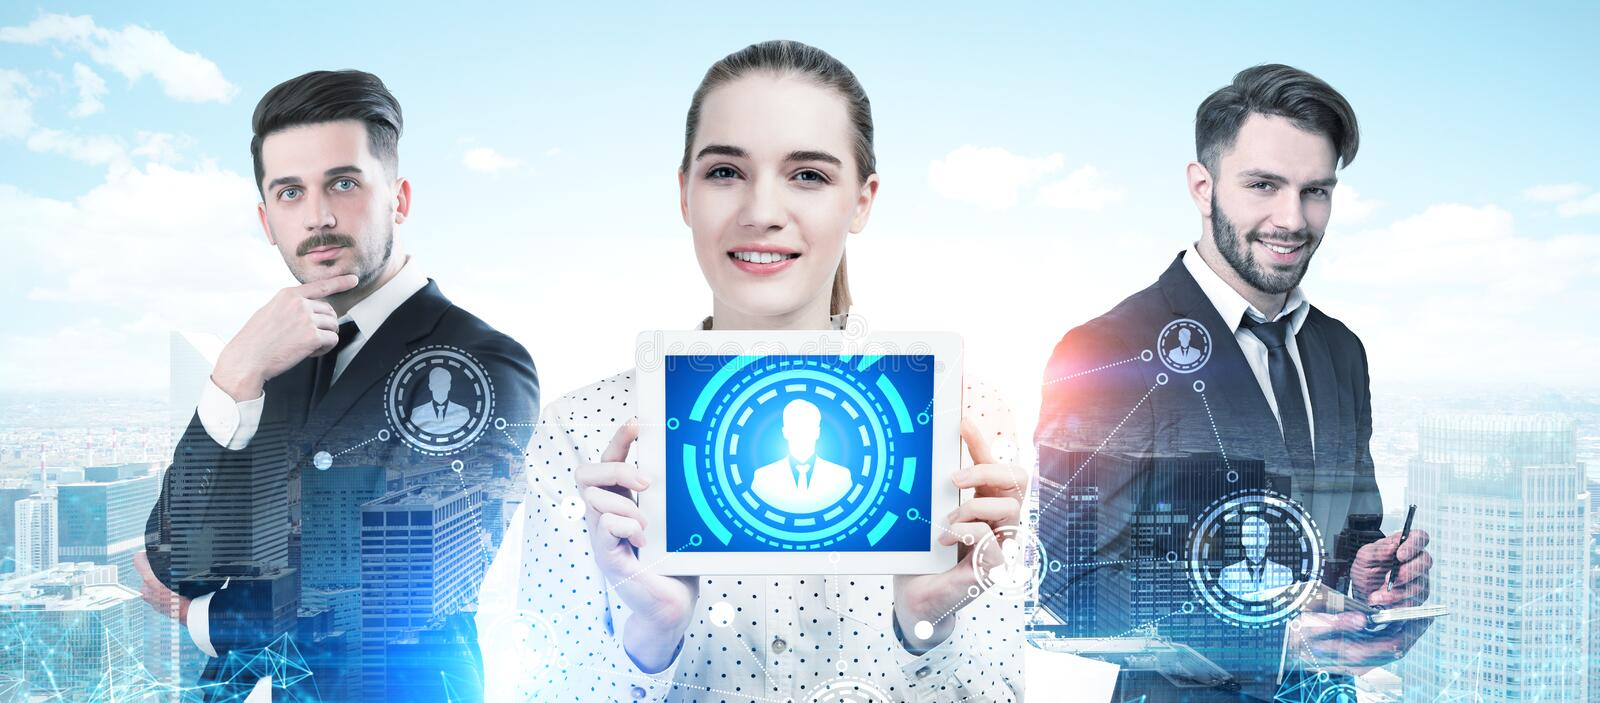 Business partners portrait in a city, HUD, HR stock images